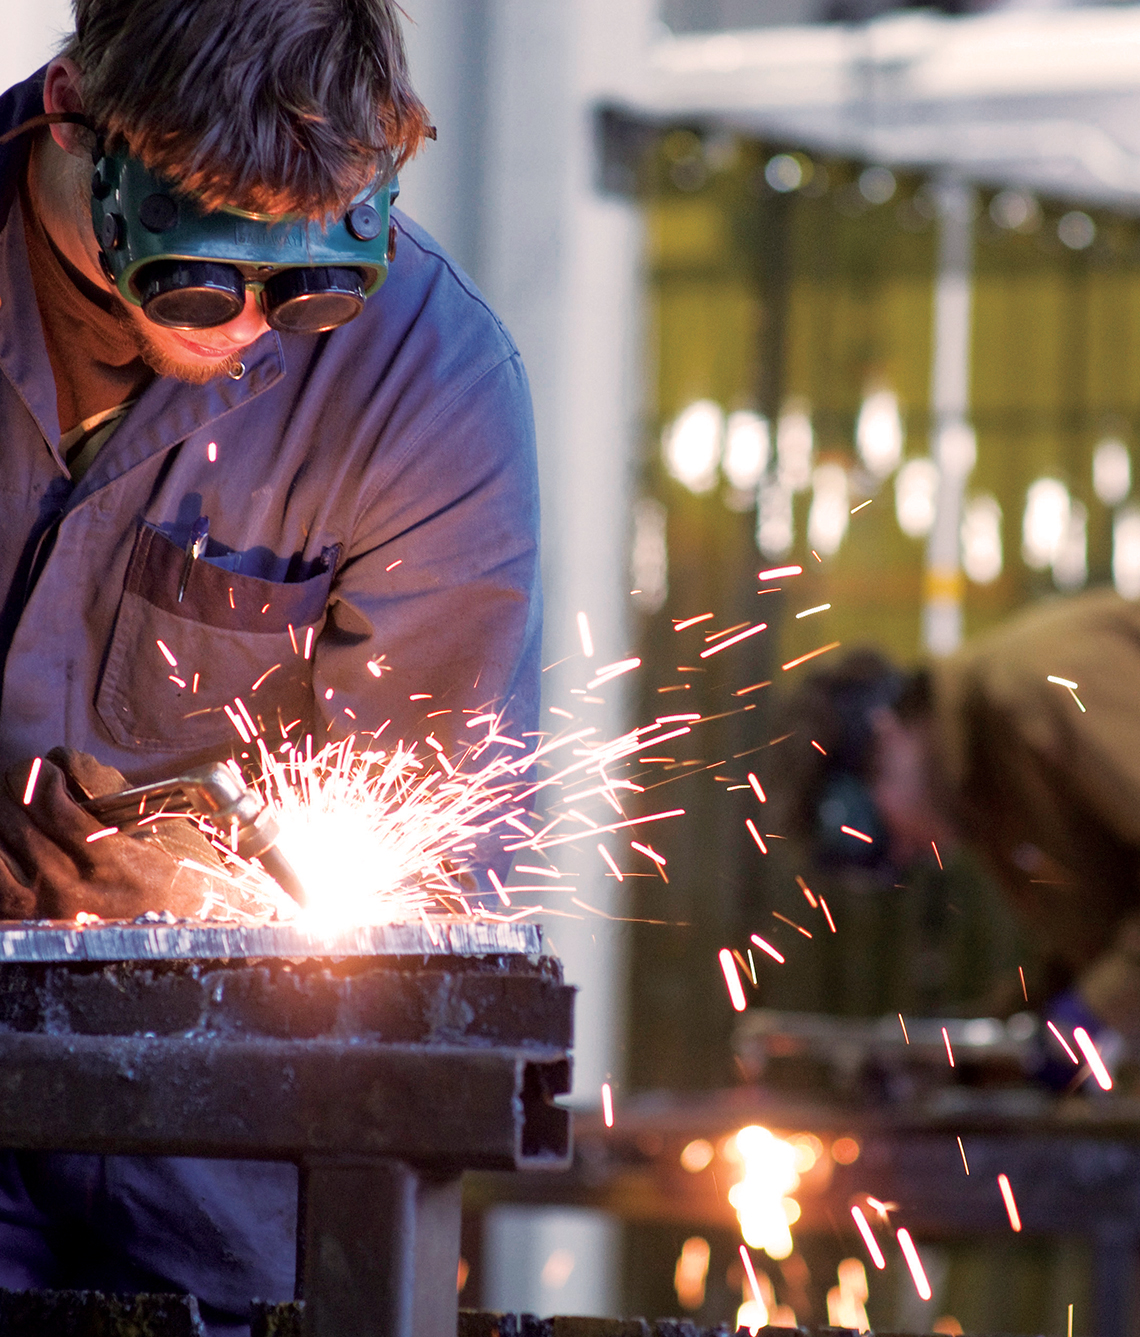 Varied work opportunities exist for trained welders